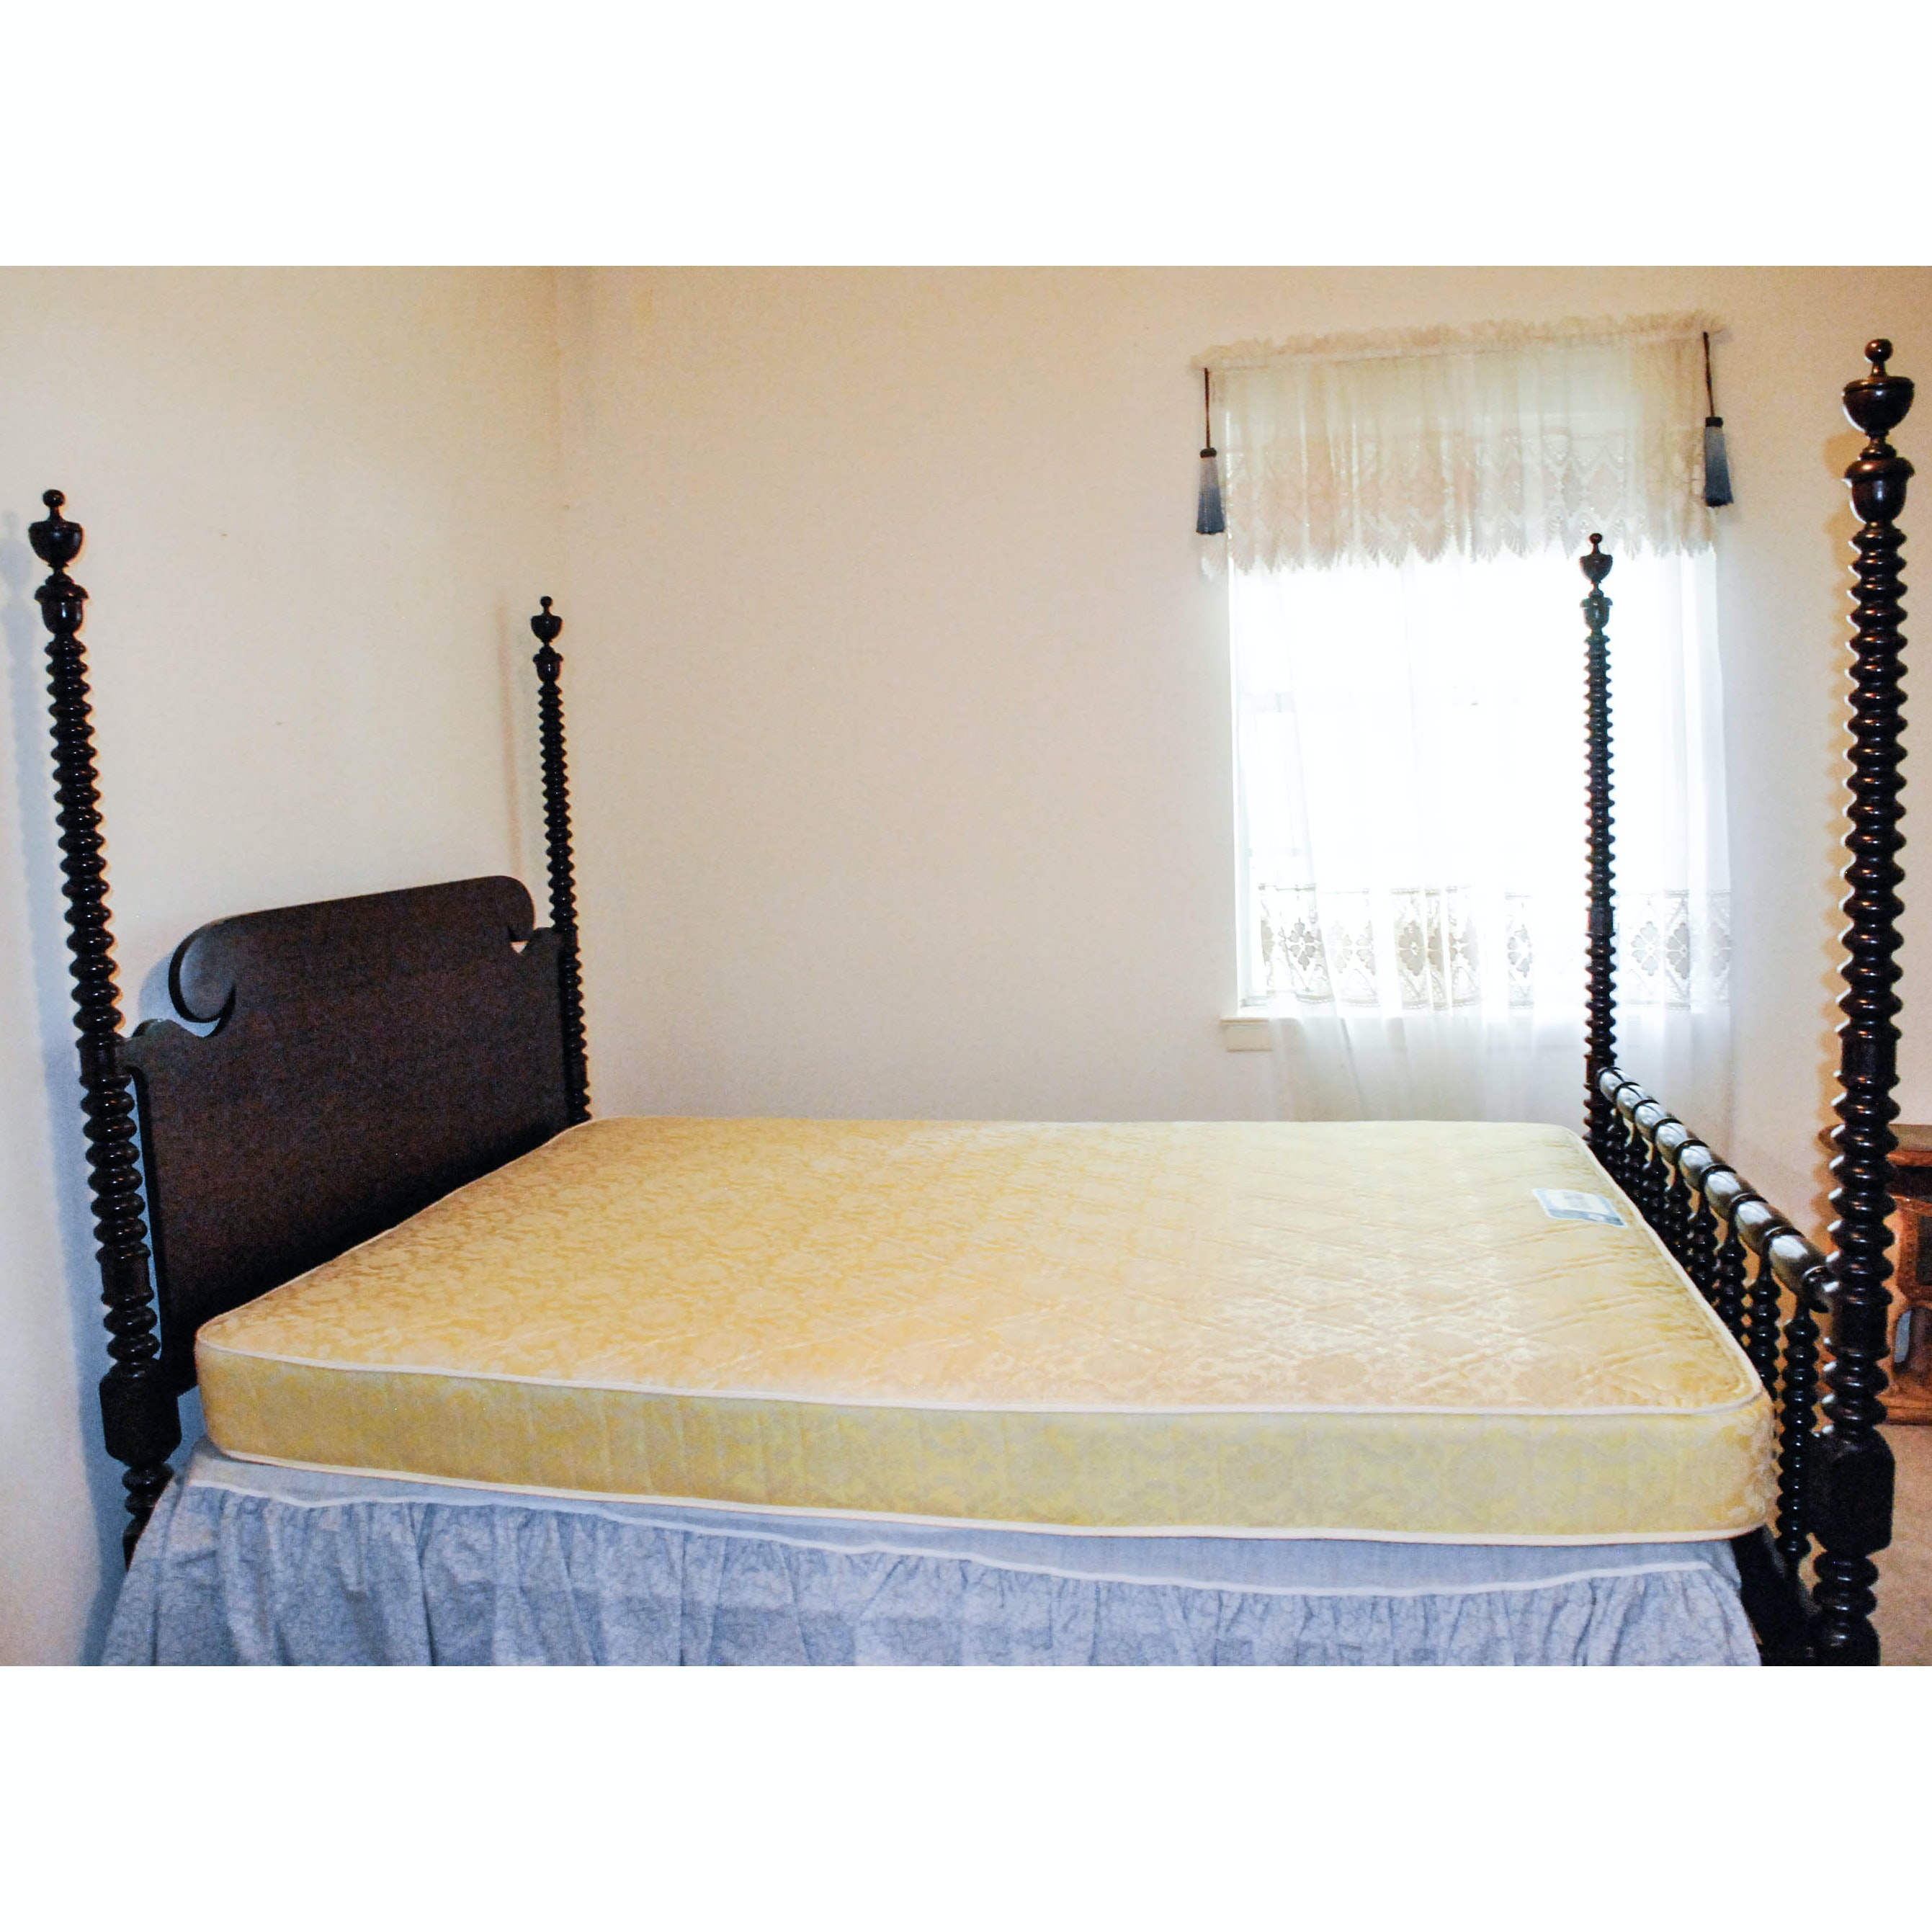 Cannonball Full Size Bed Frame with Bobbin Turned Posters